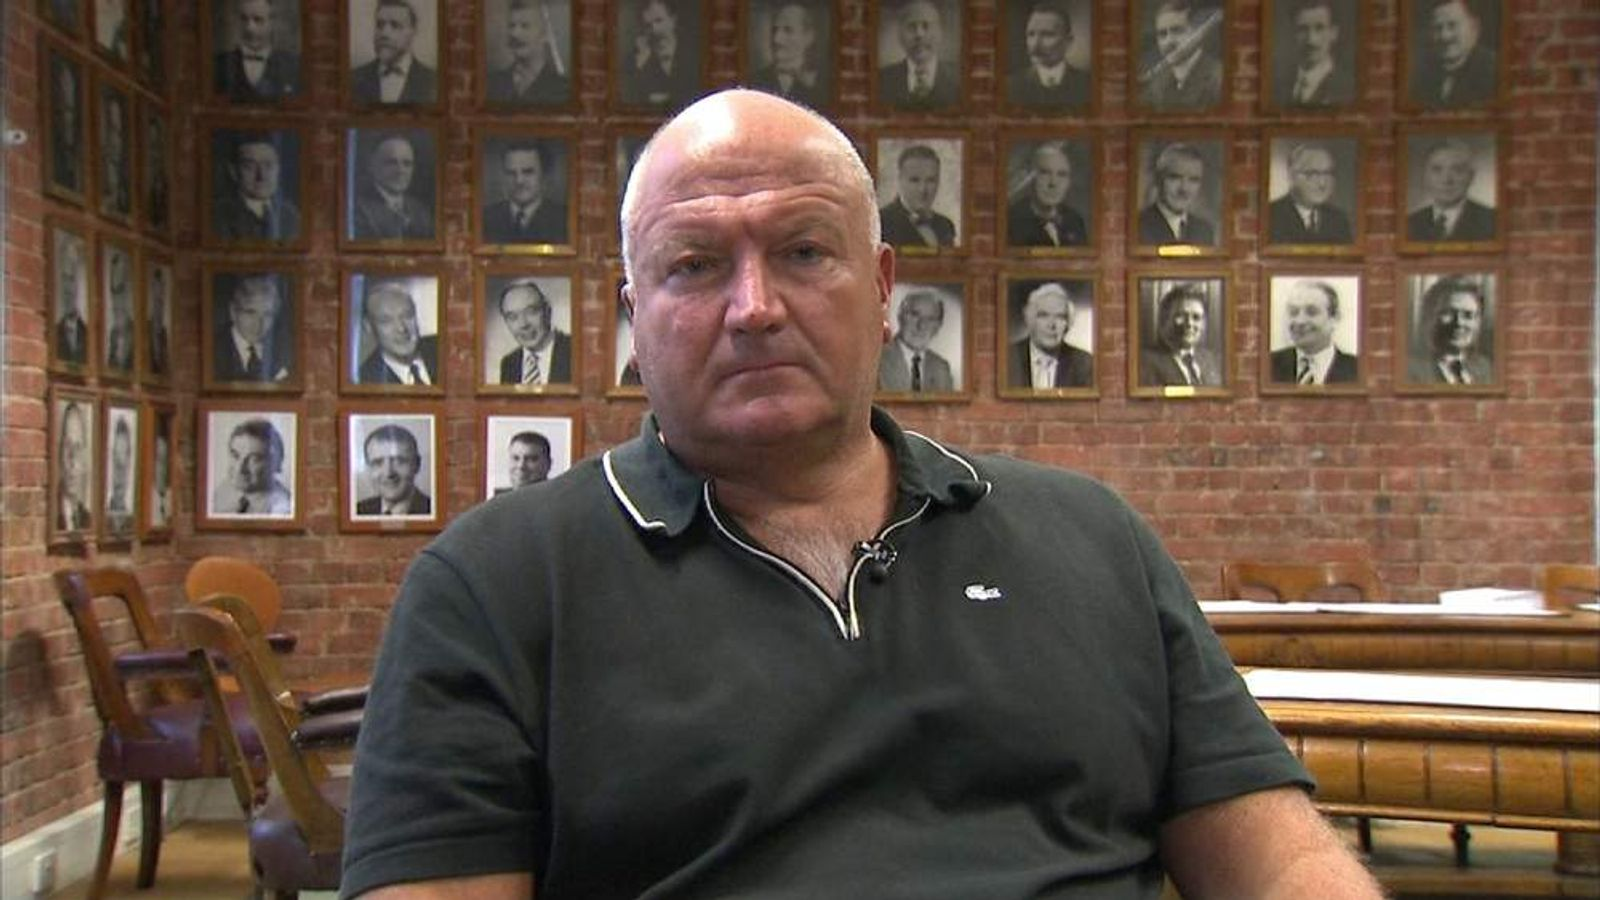 Bob Crow of the RMT union